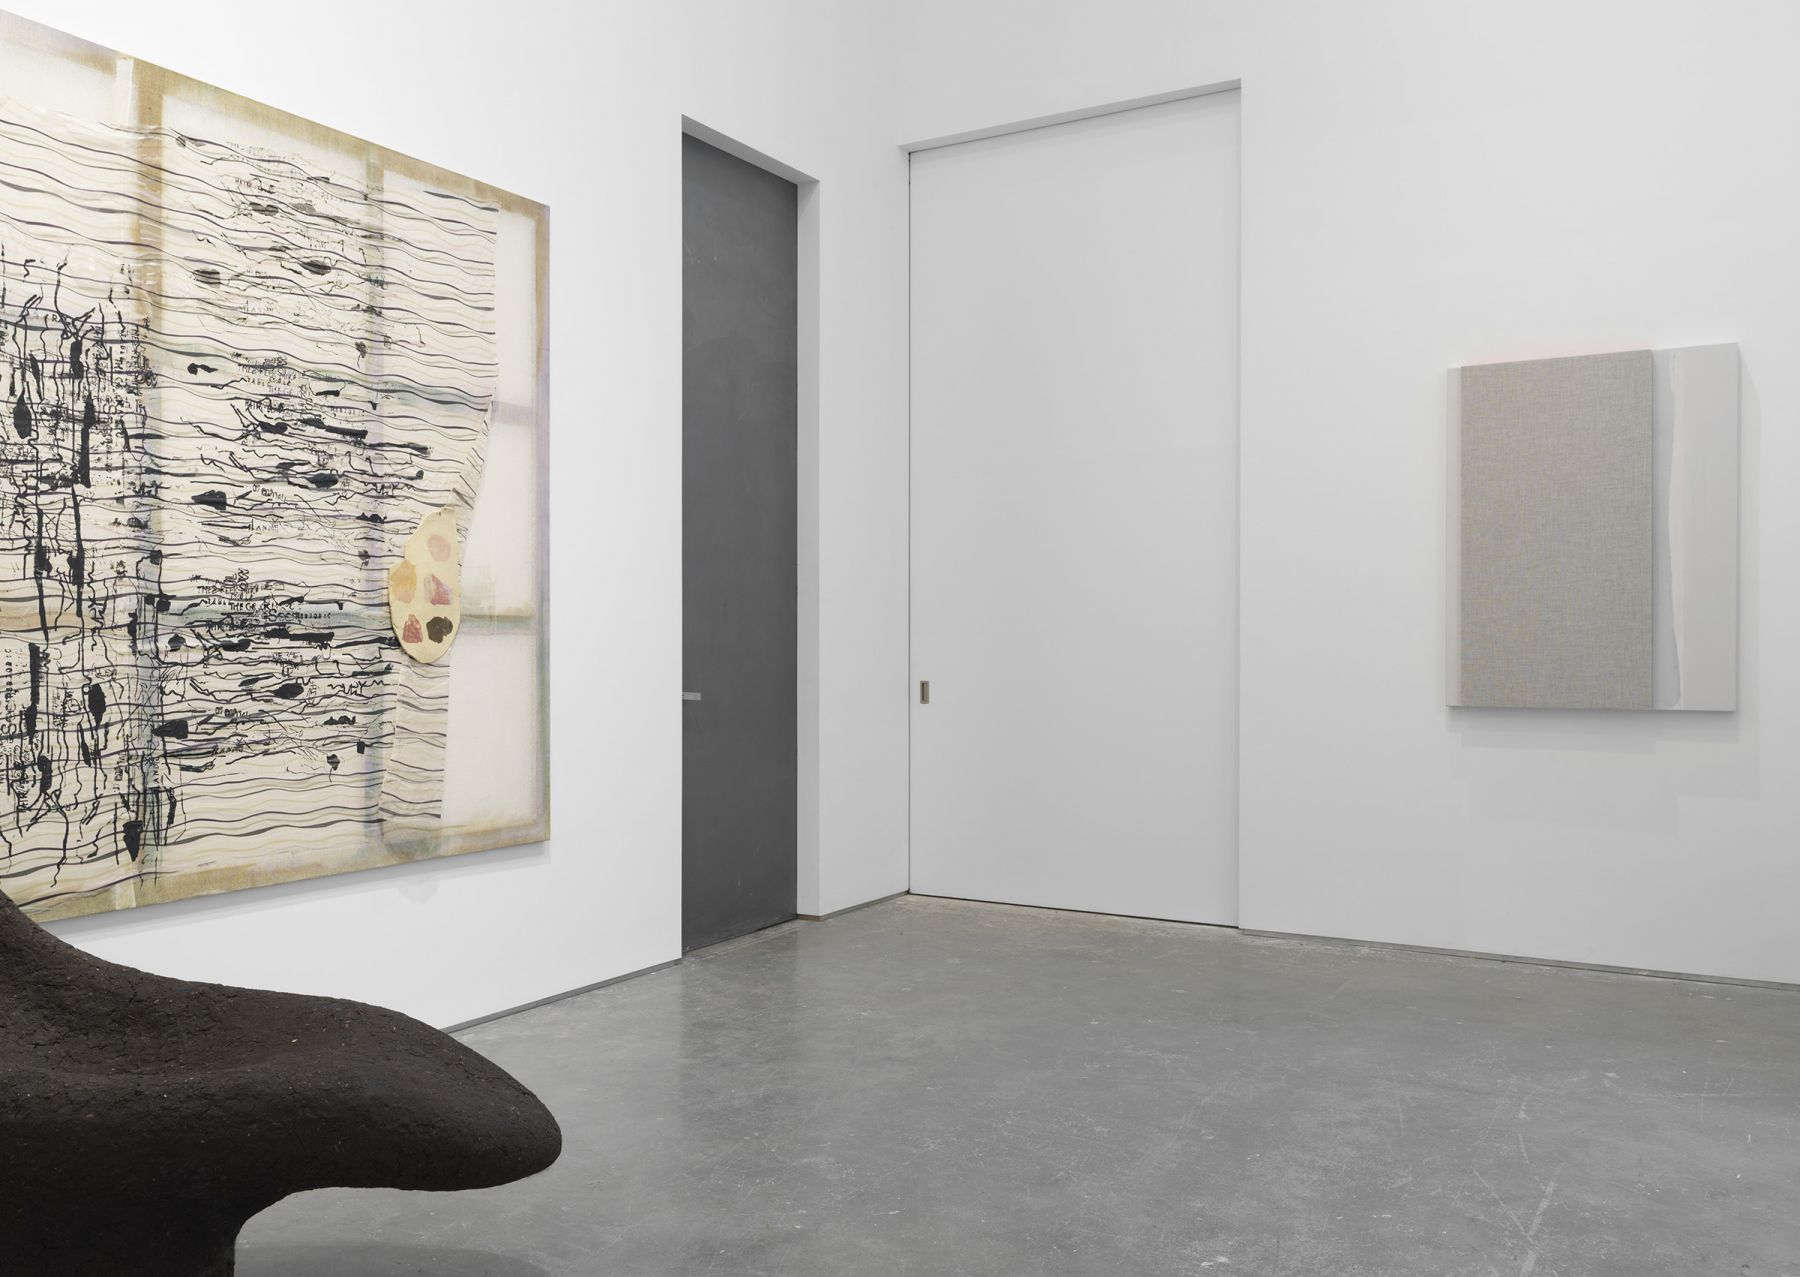 Cells(Installation View) Boesky Gallery, 2017